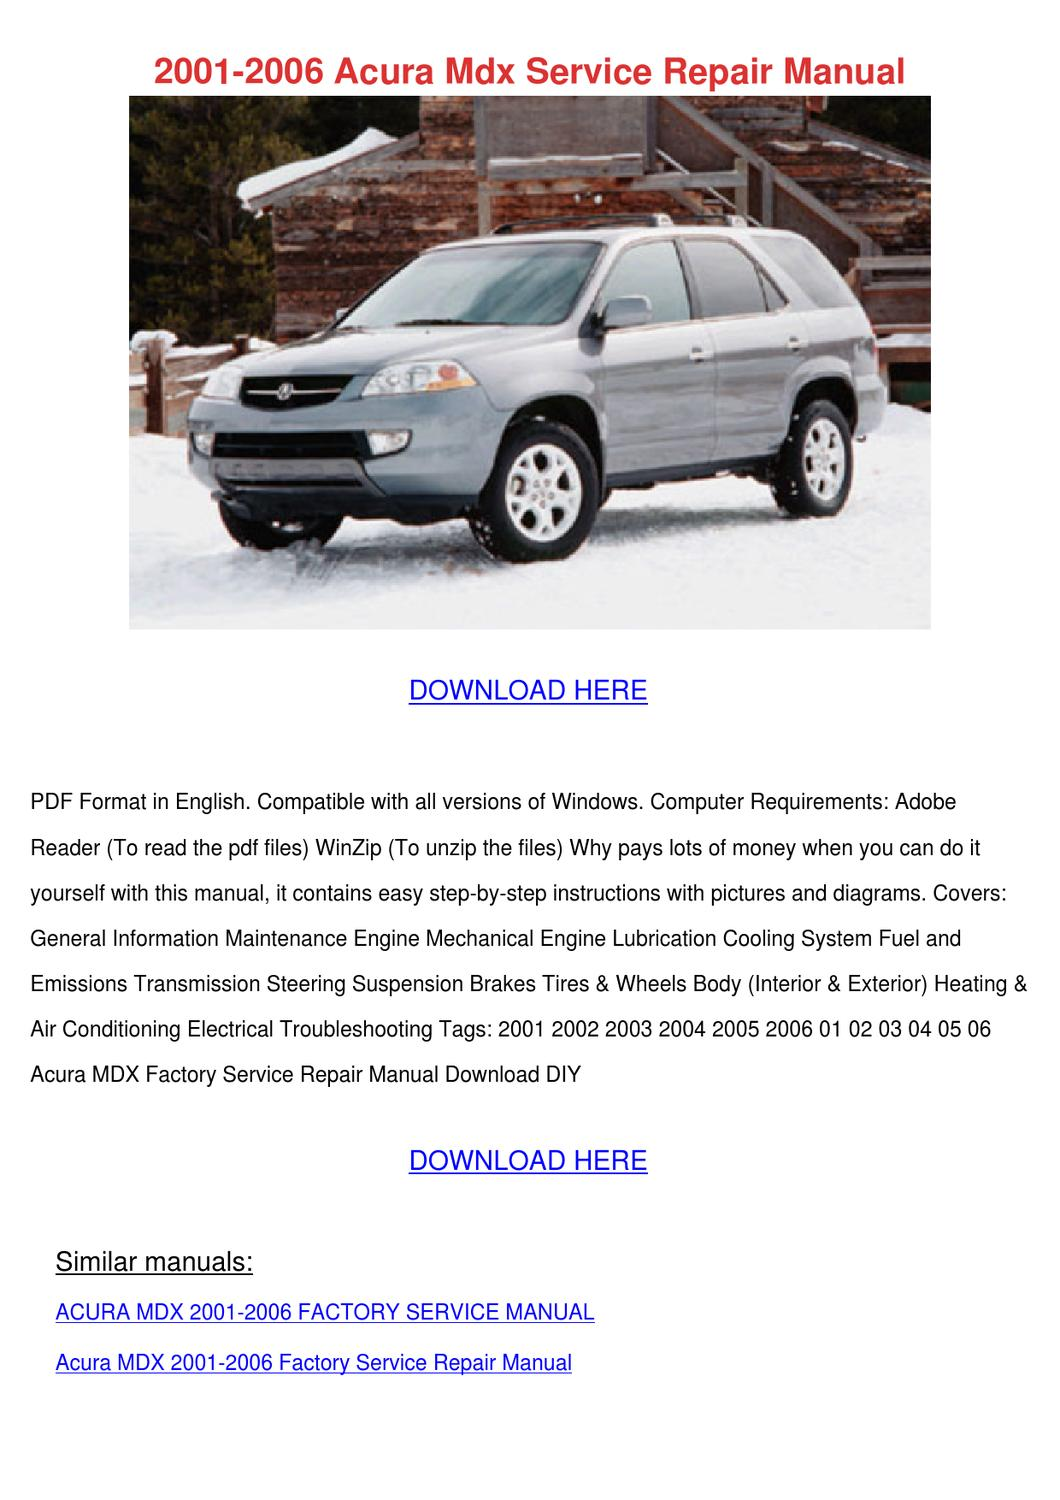 acura mdx service manual download